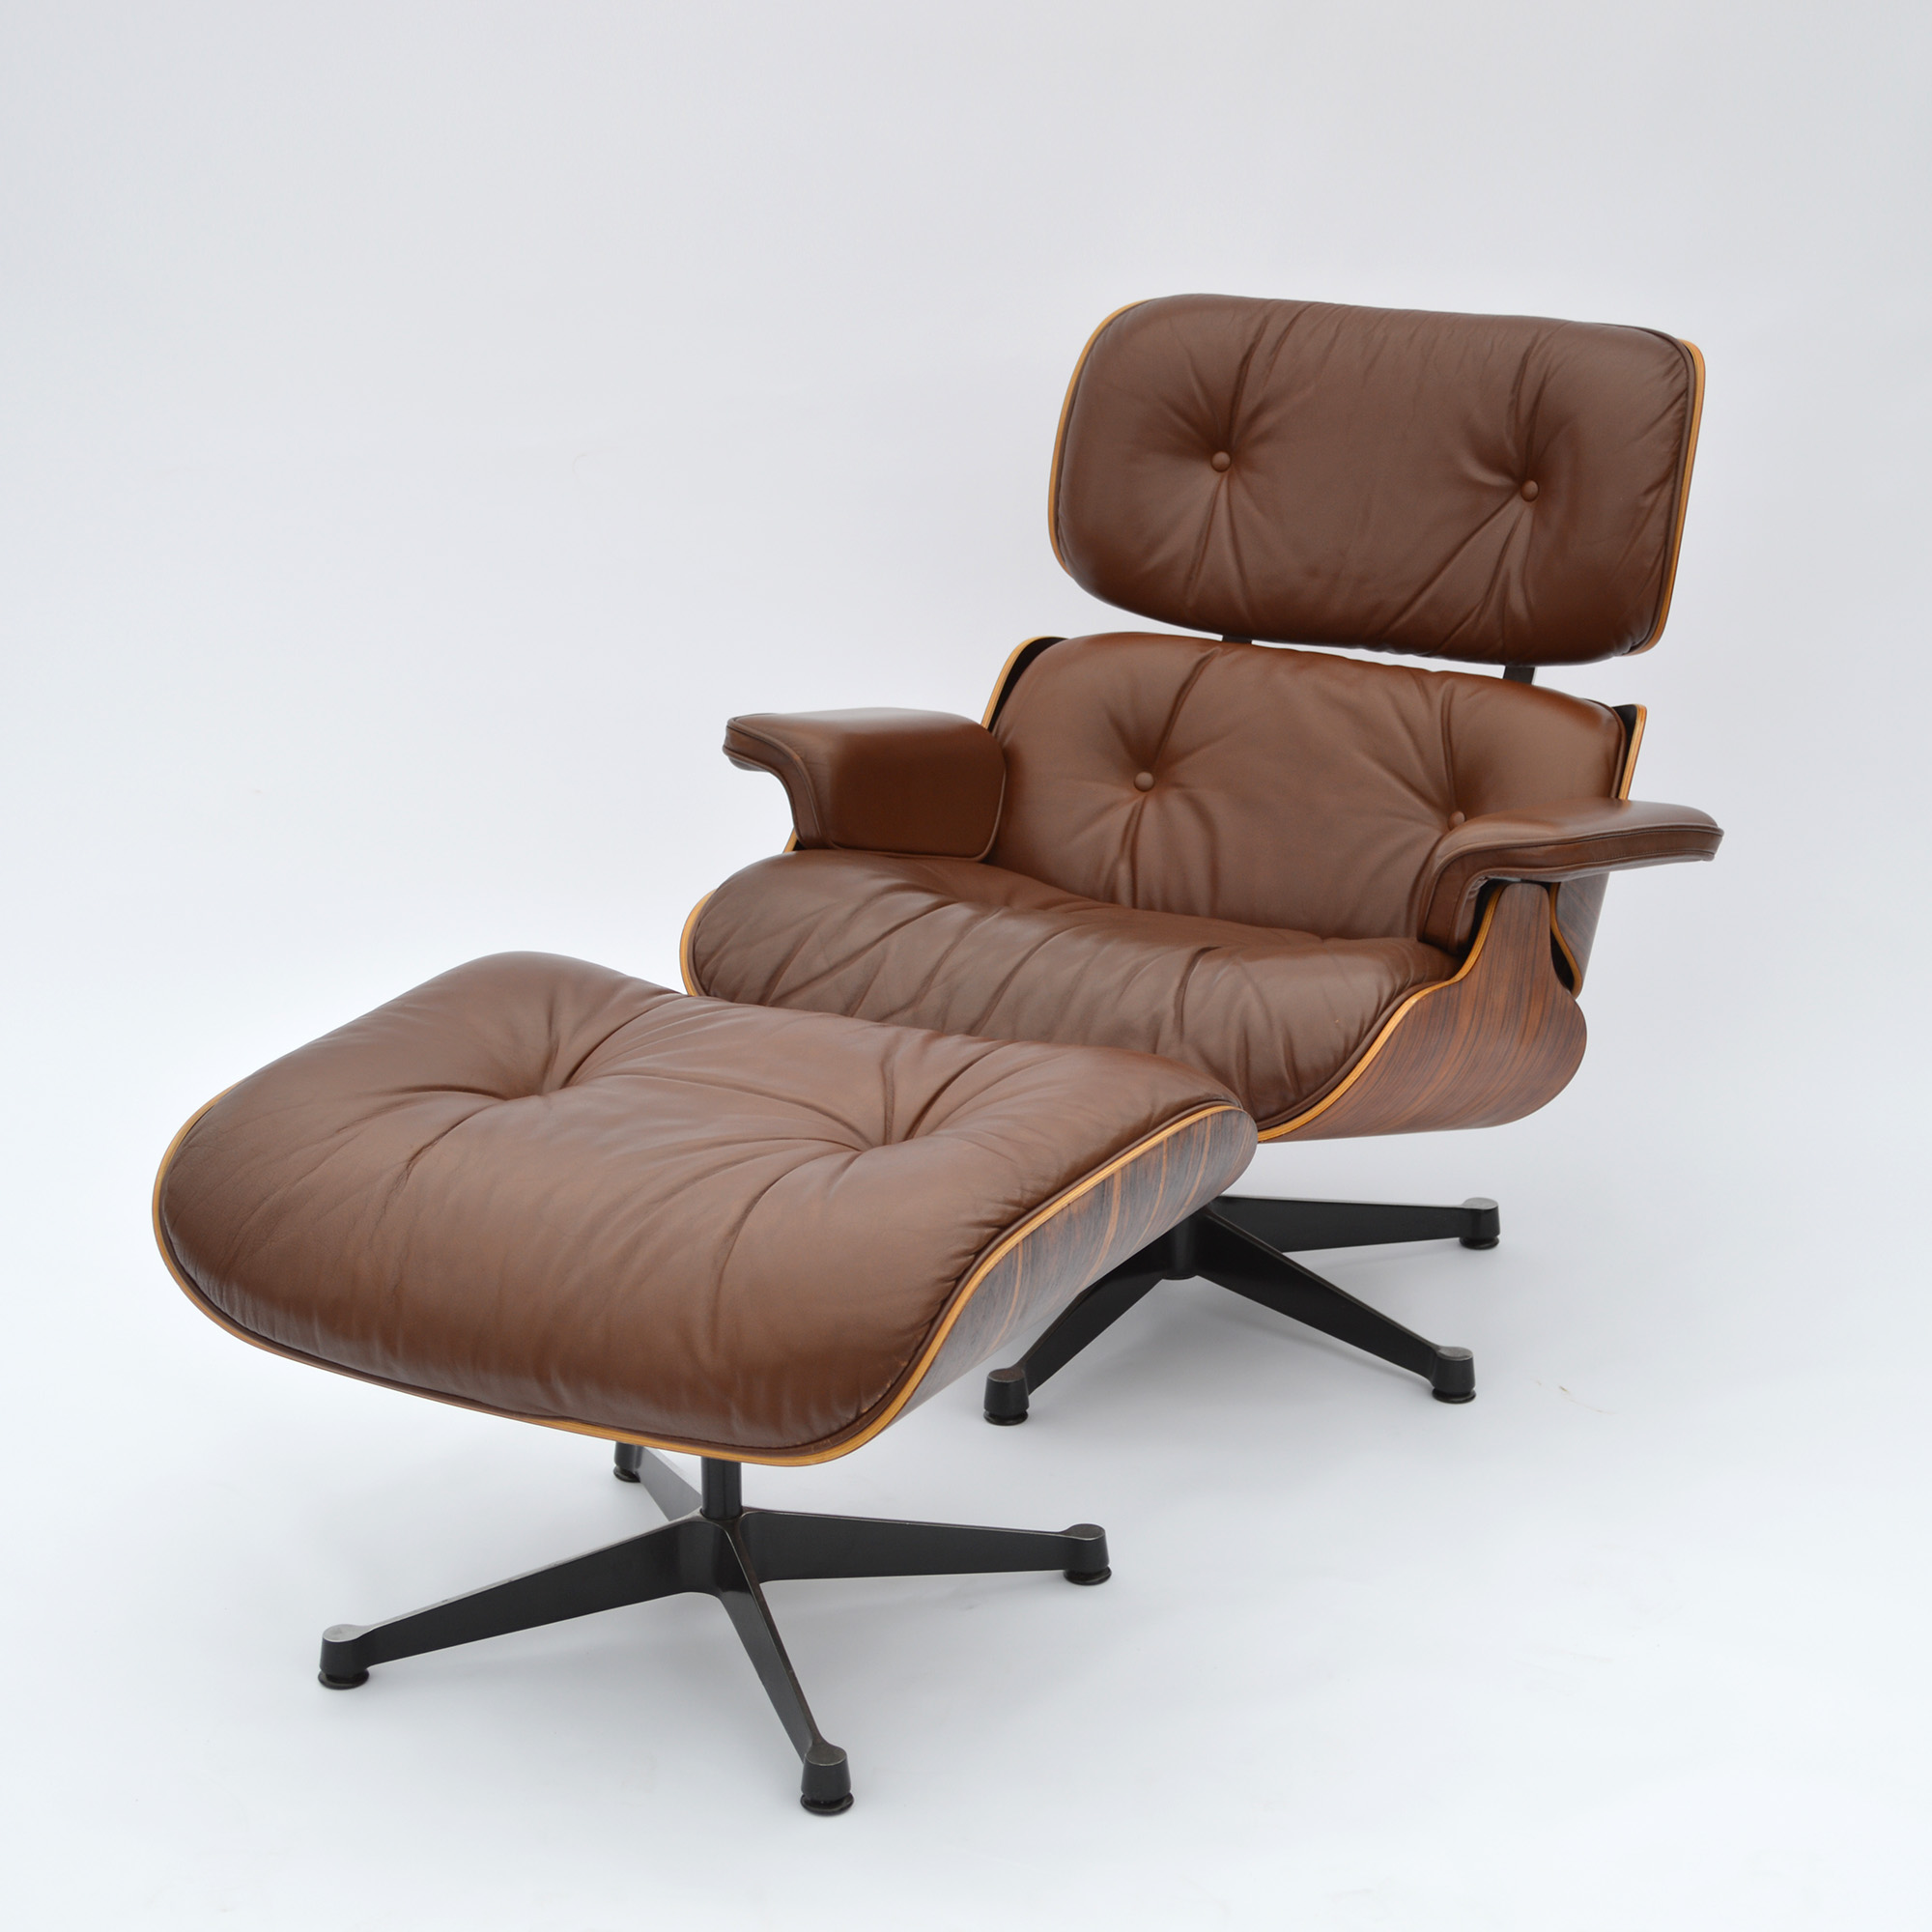 vitra lounge chair hover round 1977 rio palisander original eames ottoman herman miller by